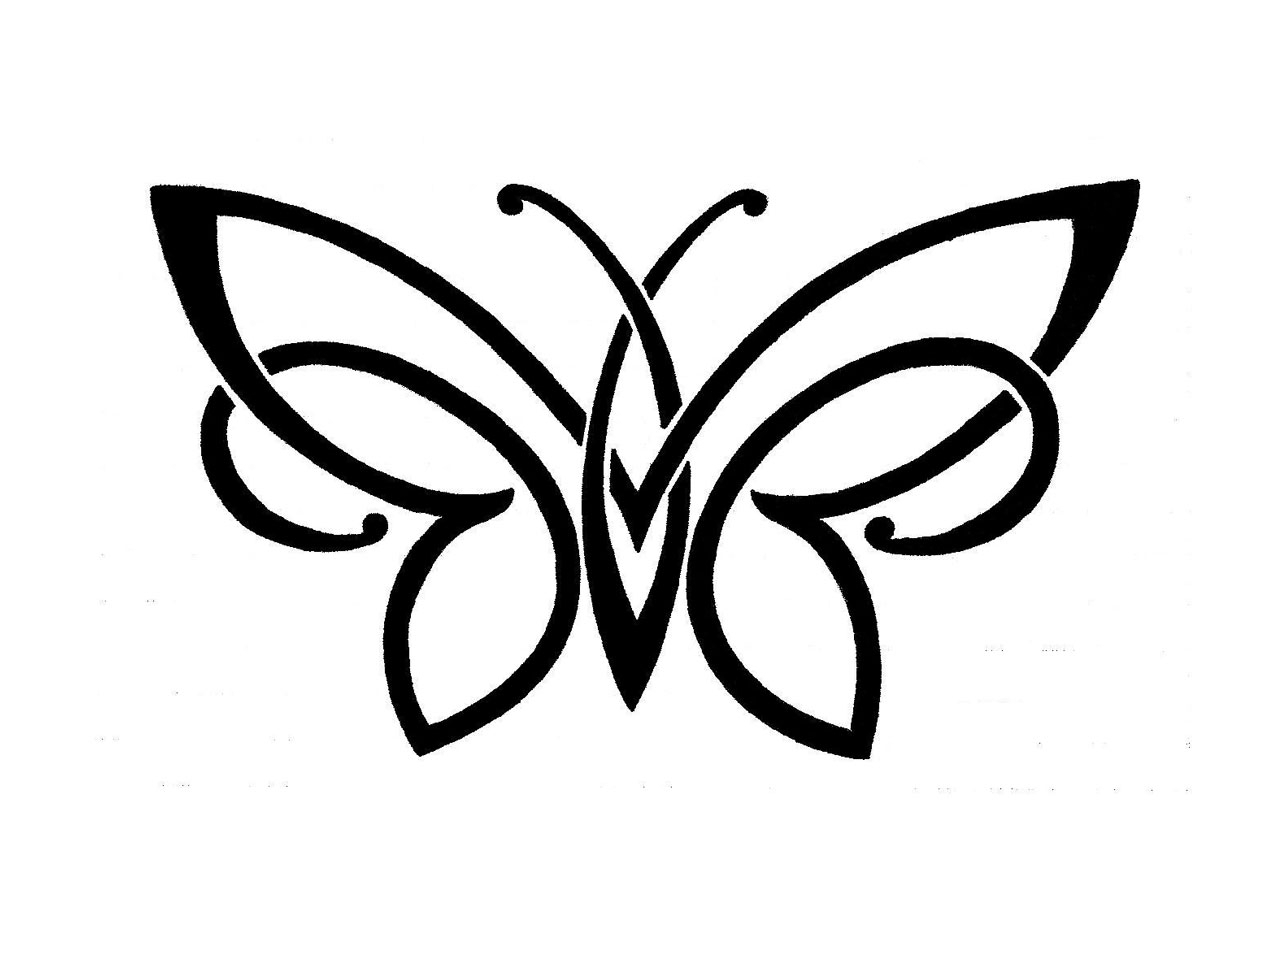 1280x960 Simple Pencil Drawing Images Of Butterfly Design Drawings